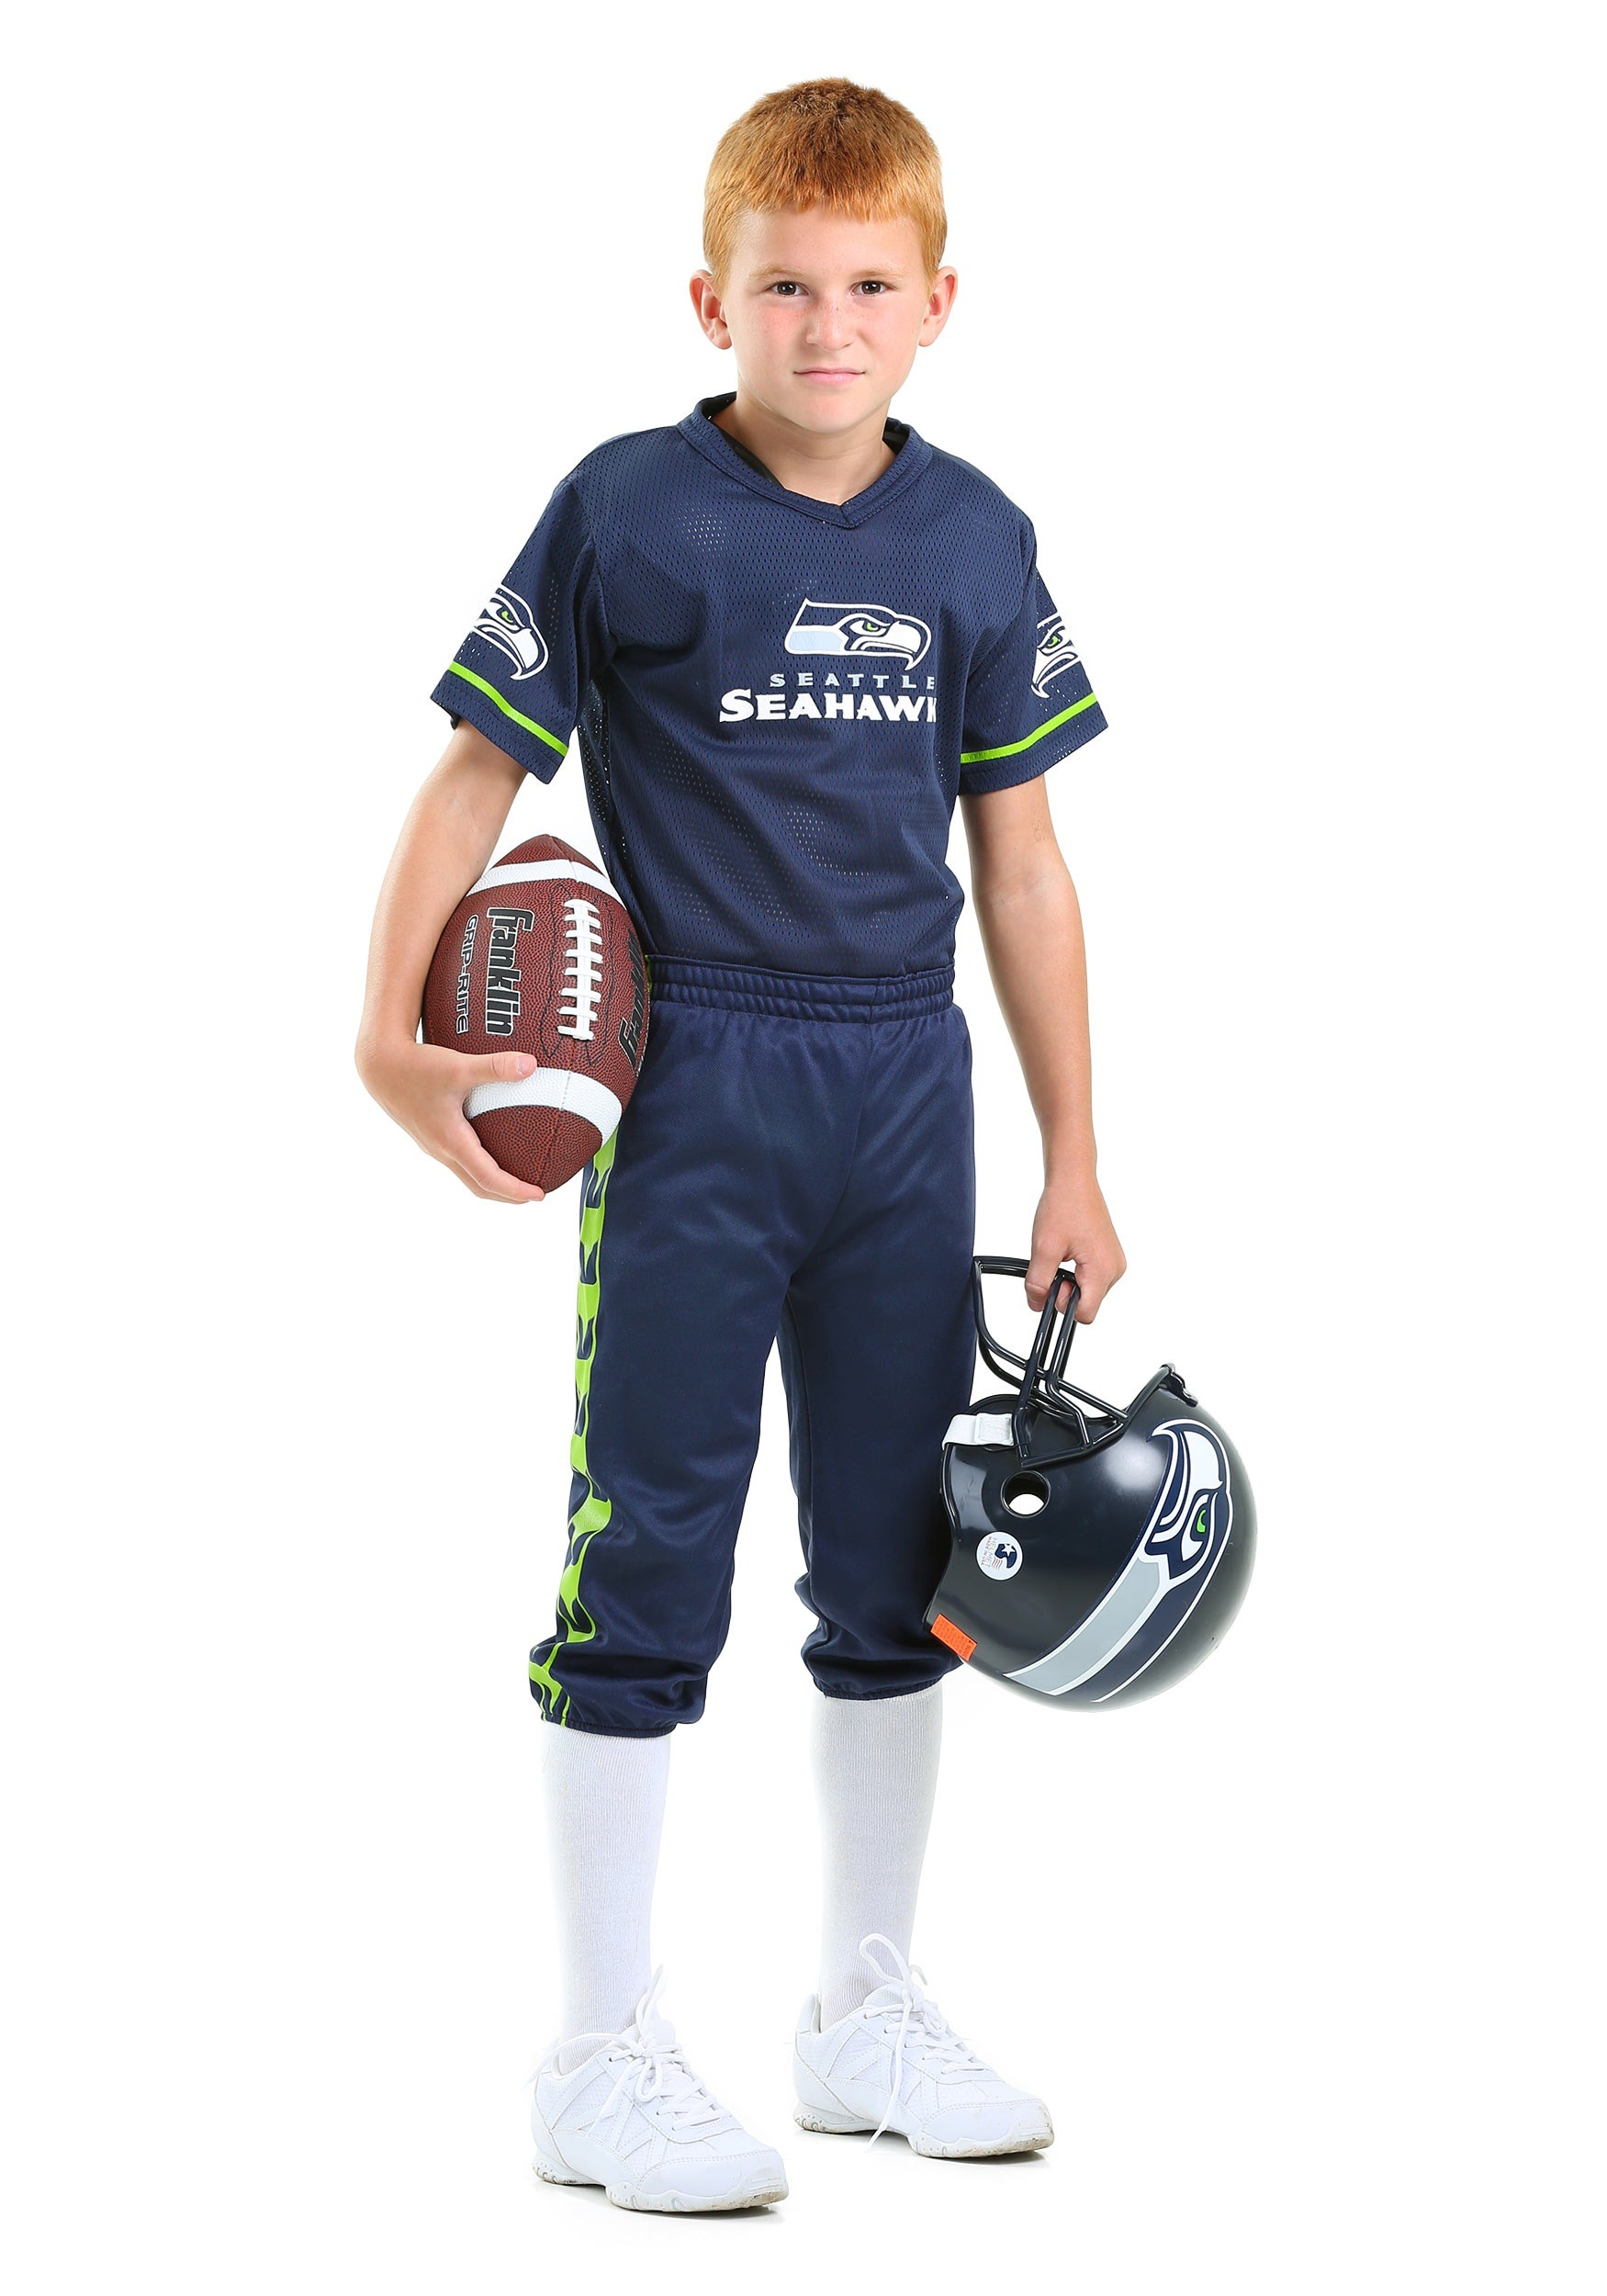 c2926a5f3f921 nfl-seahawks-uniform-costume.jpg